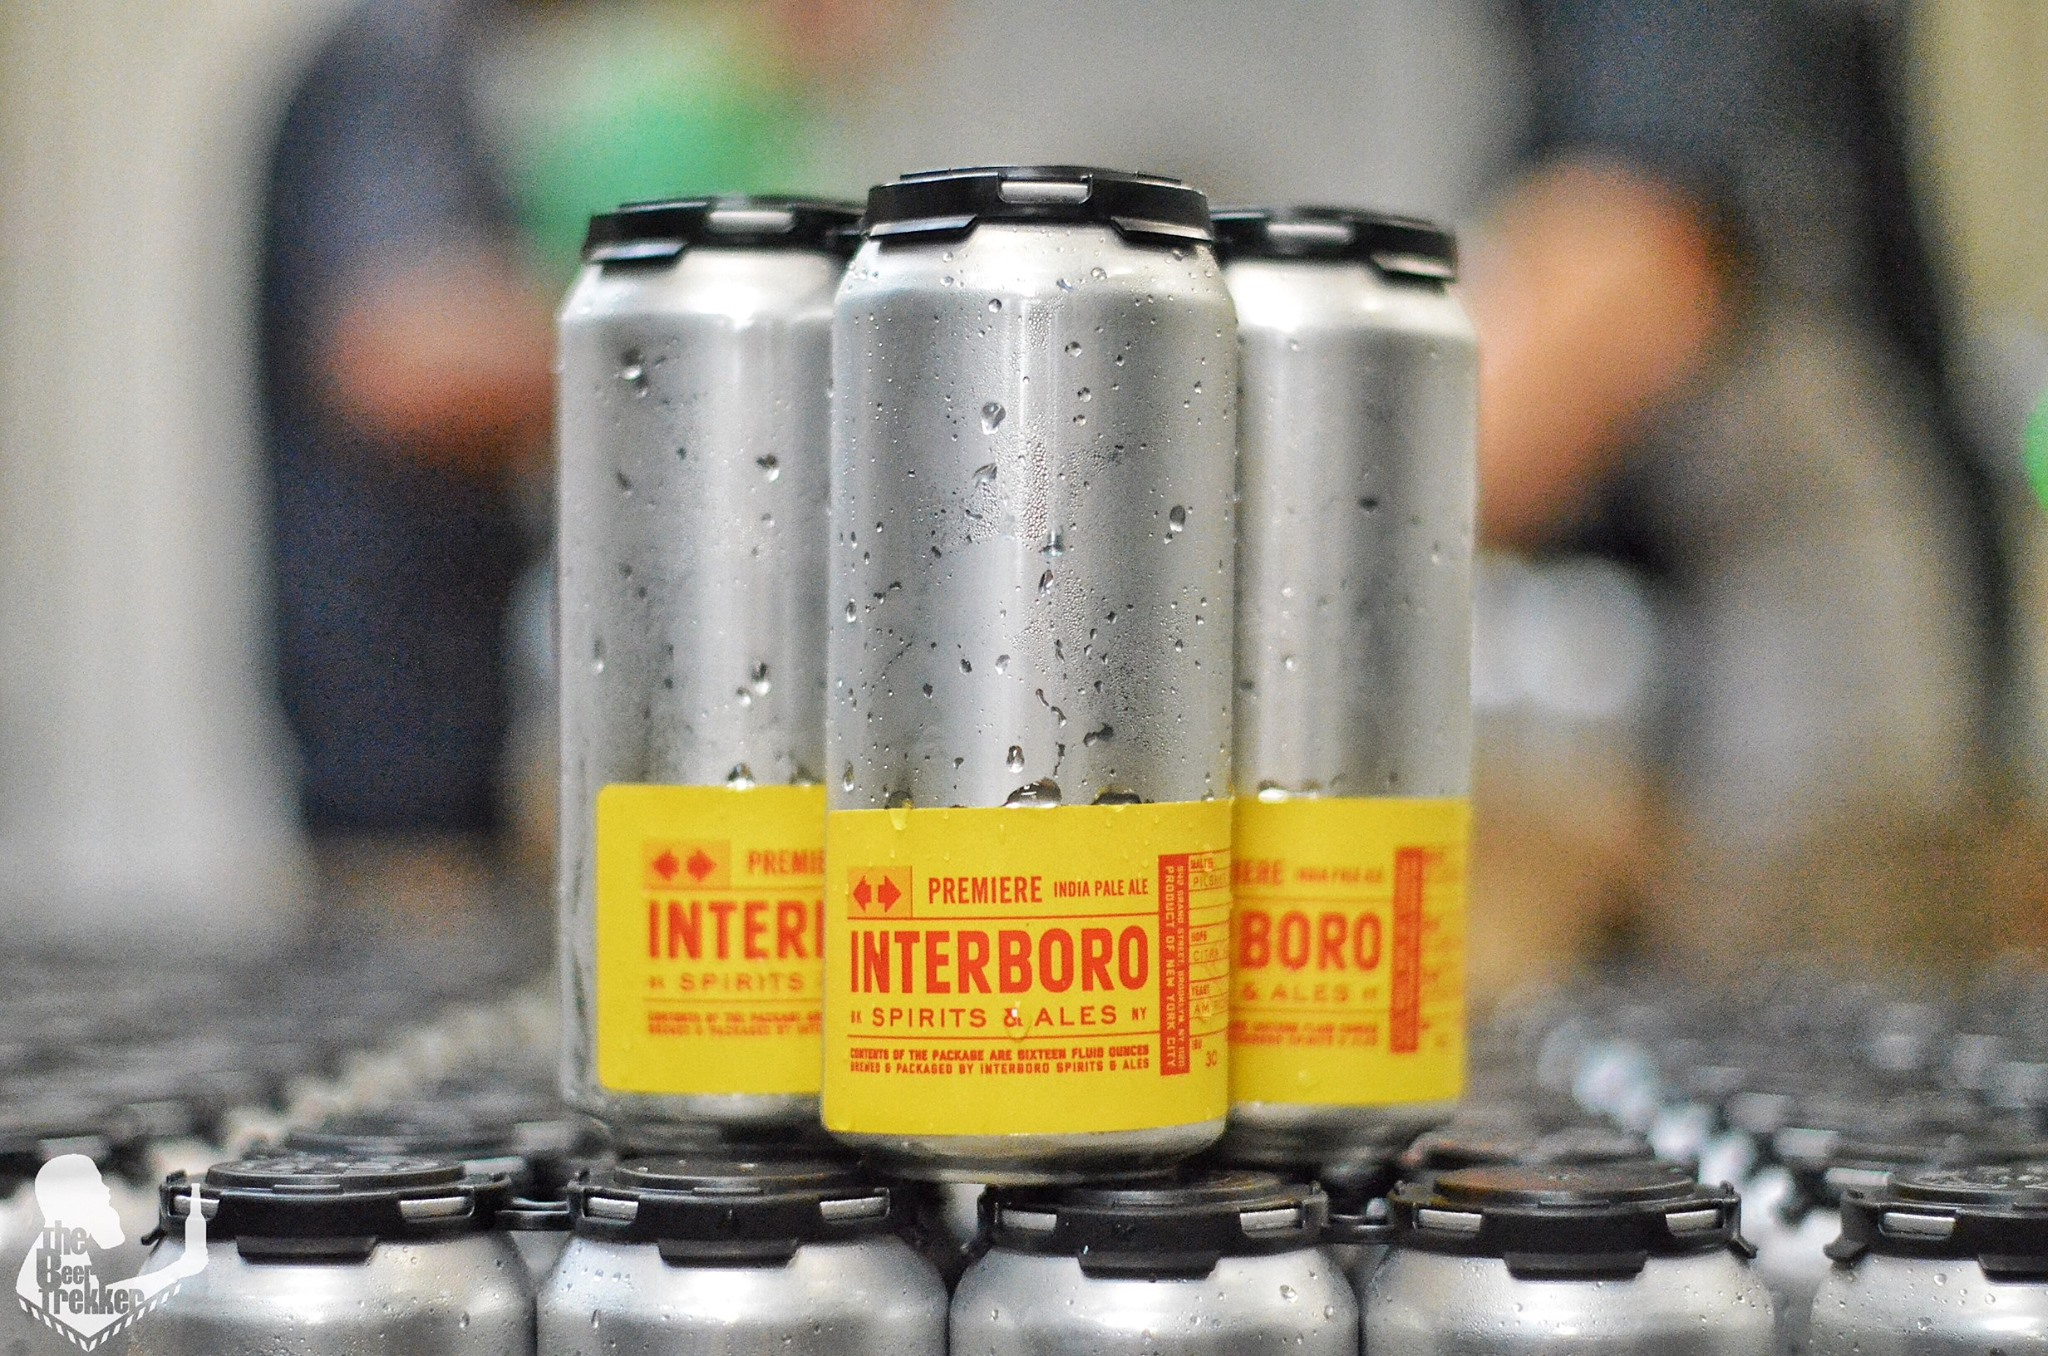 Interboro Tasting Room Opens Friday, with a Can Sale